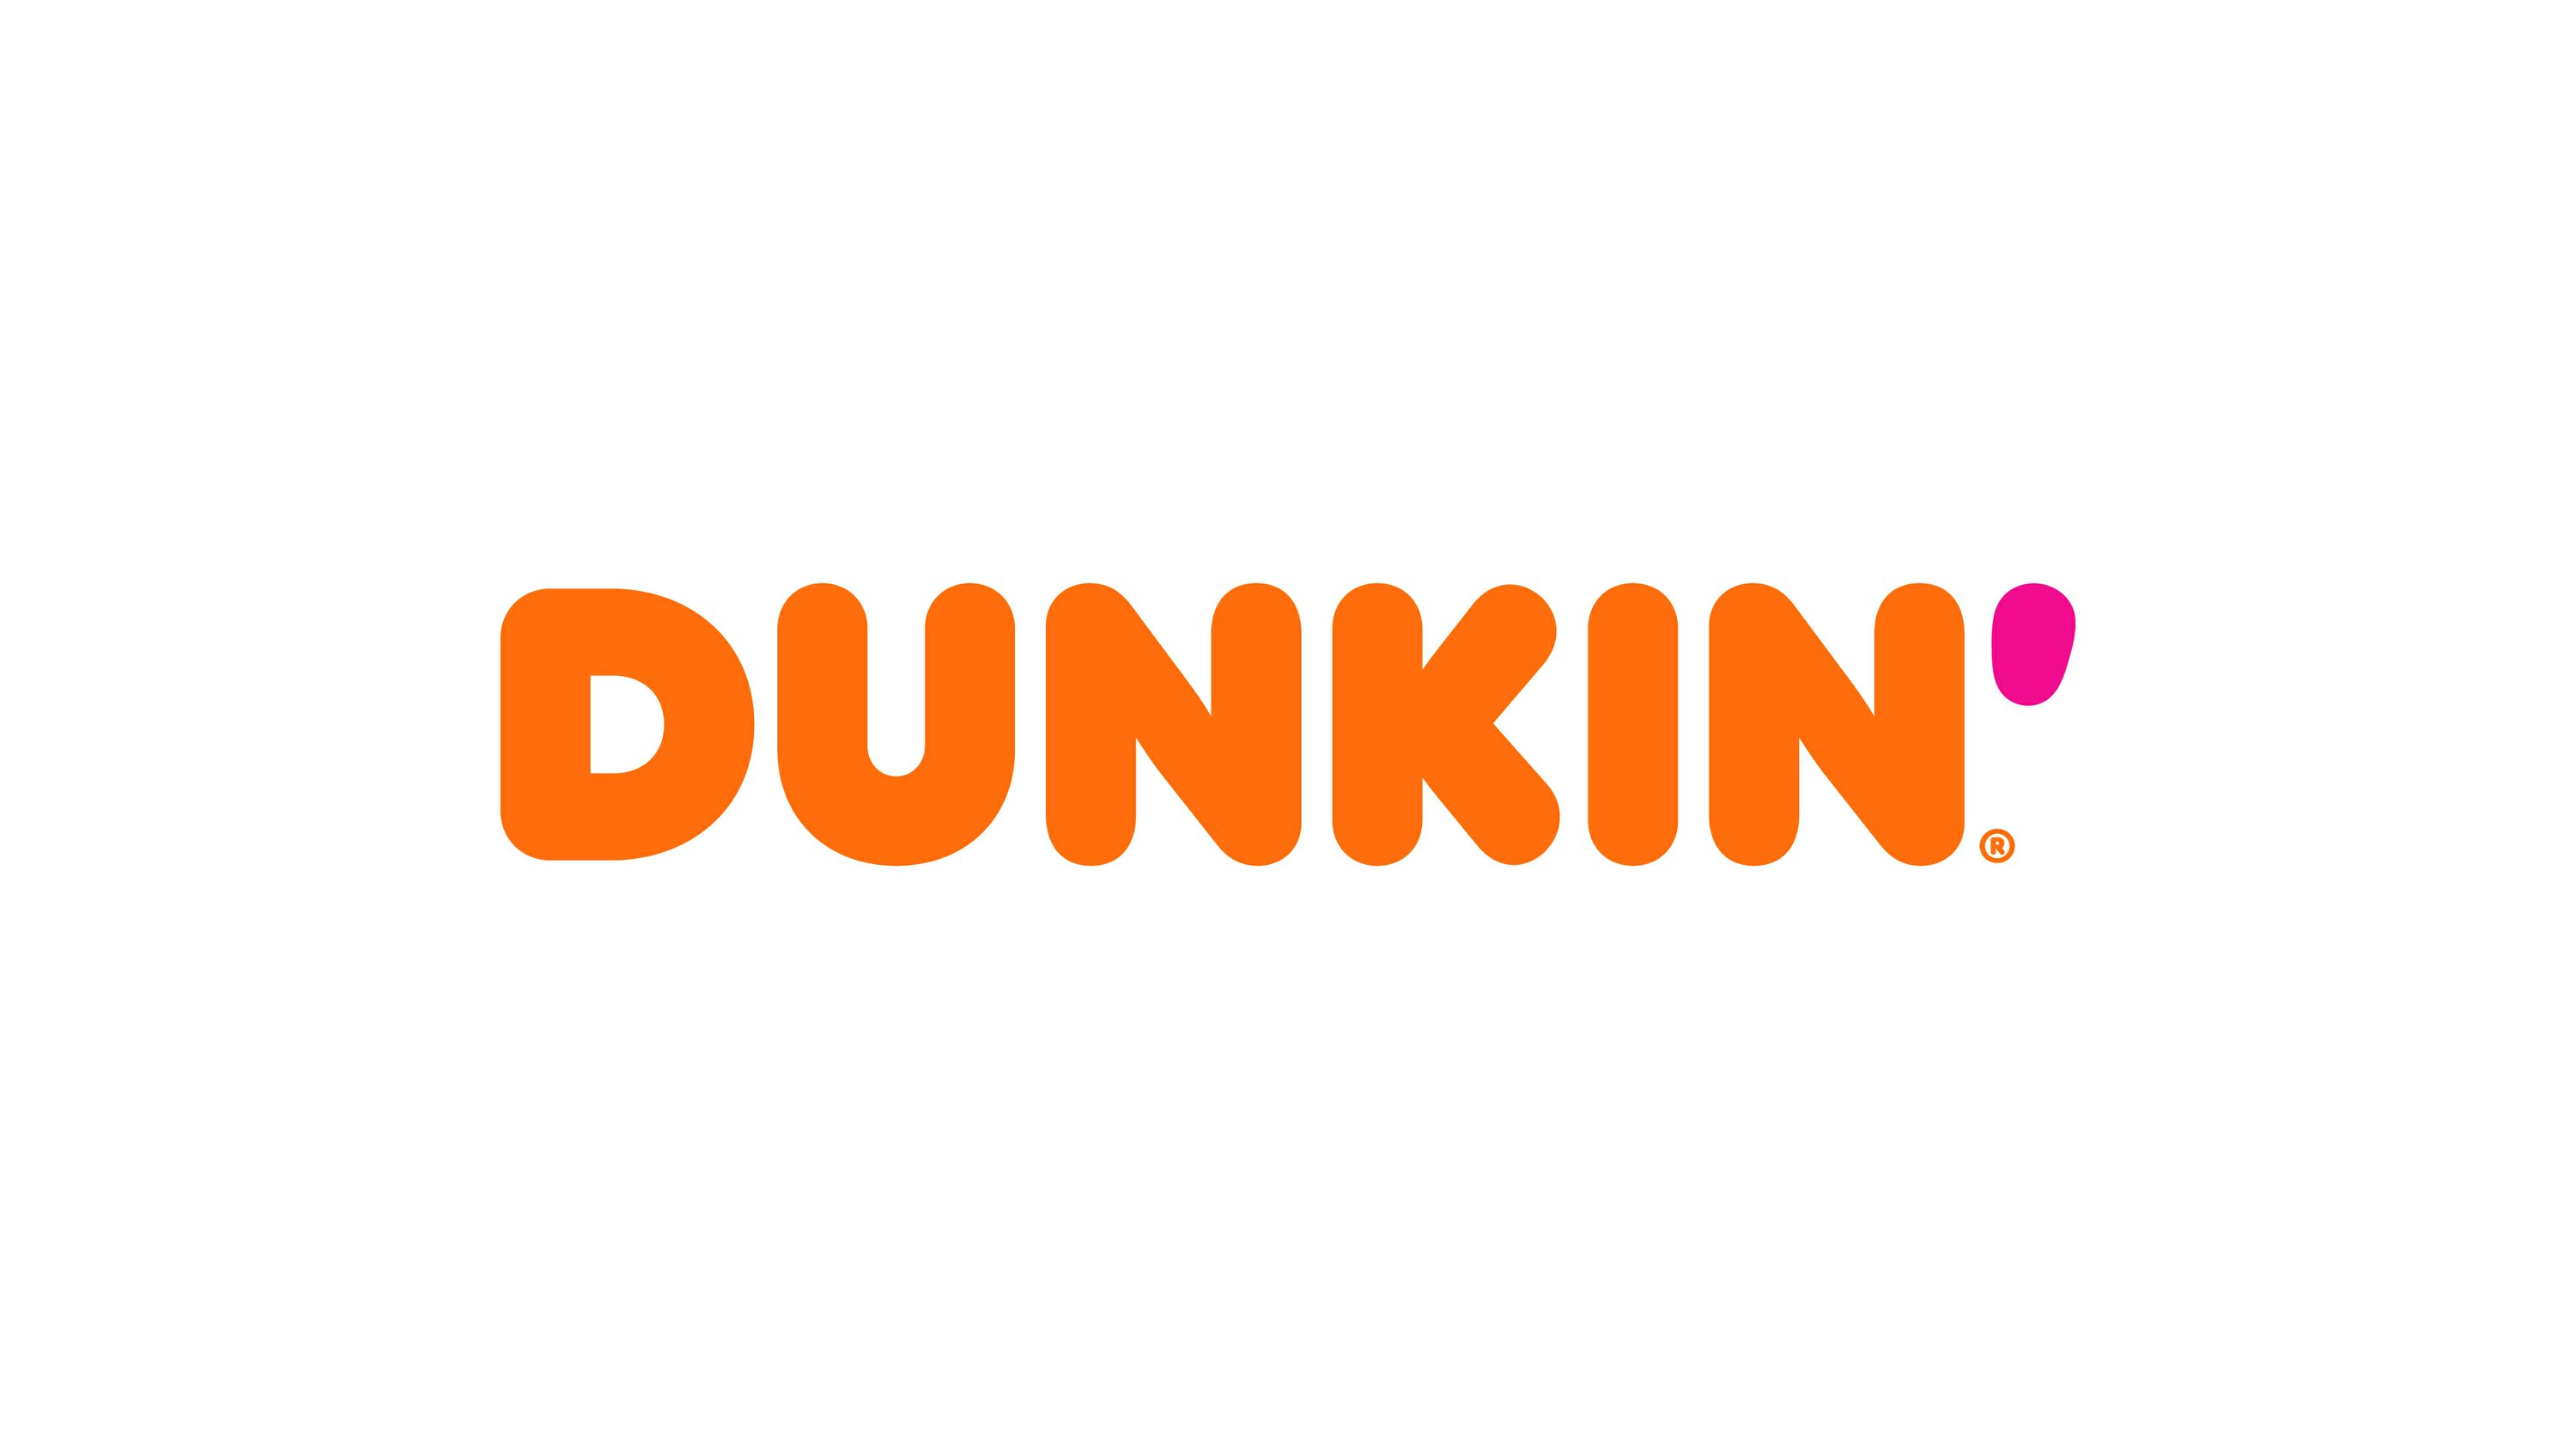 Its Official: Dunkin Donuts Is Now Just...Dunkin Its Official: Dunkin Donuts Is Now Just...Dunkin new images